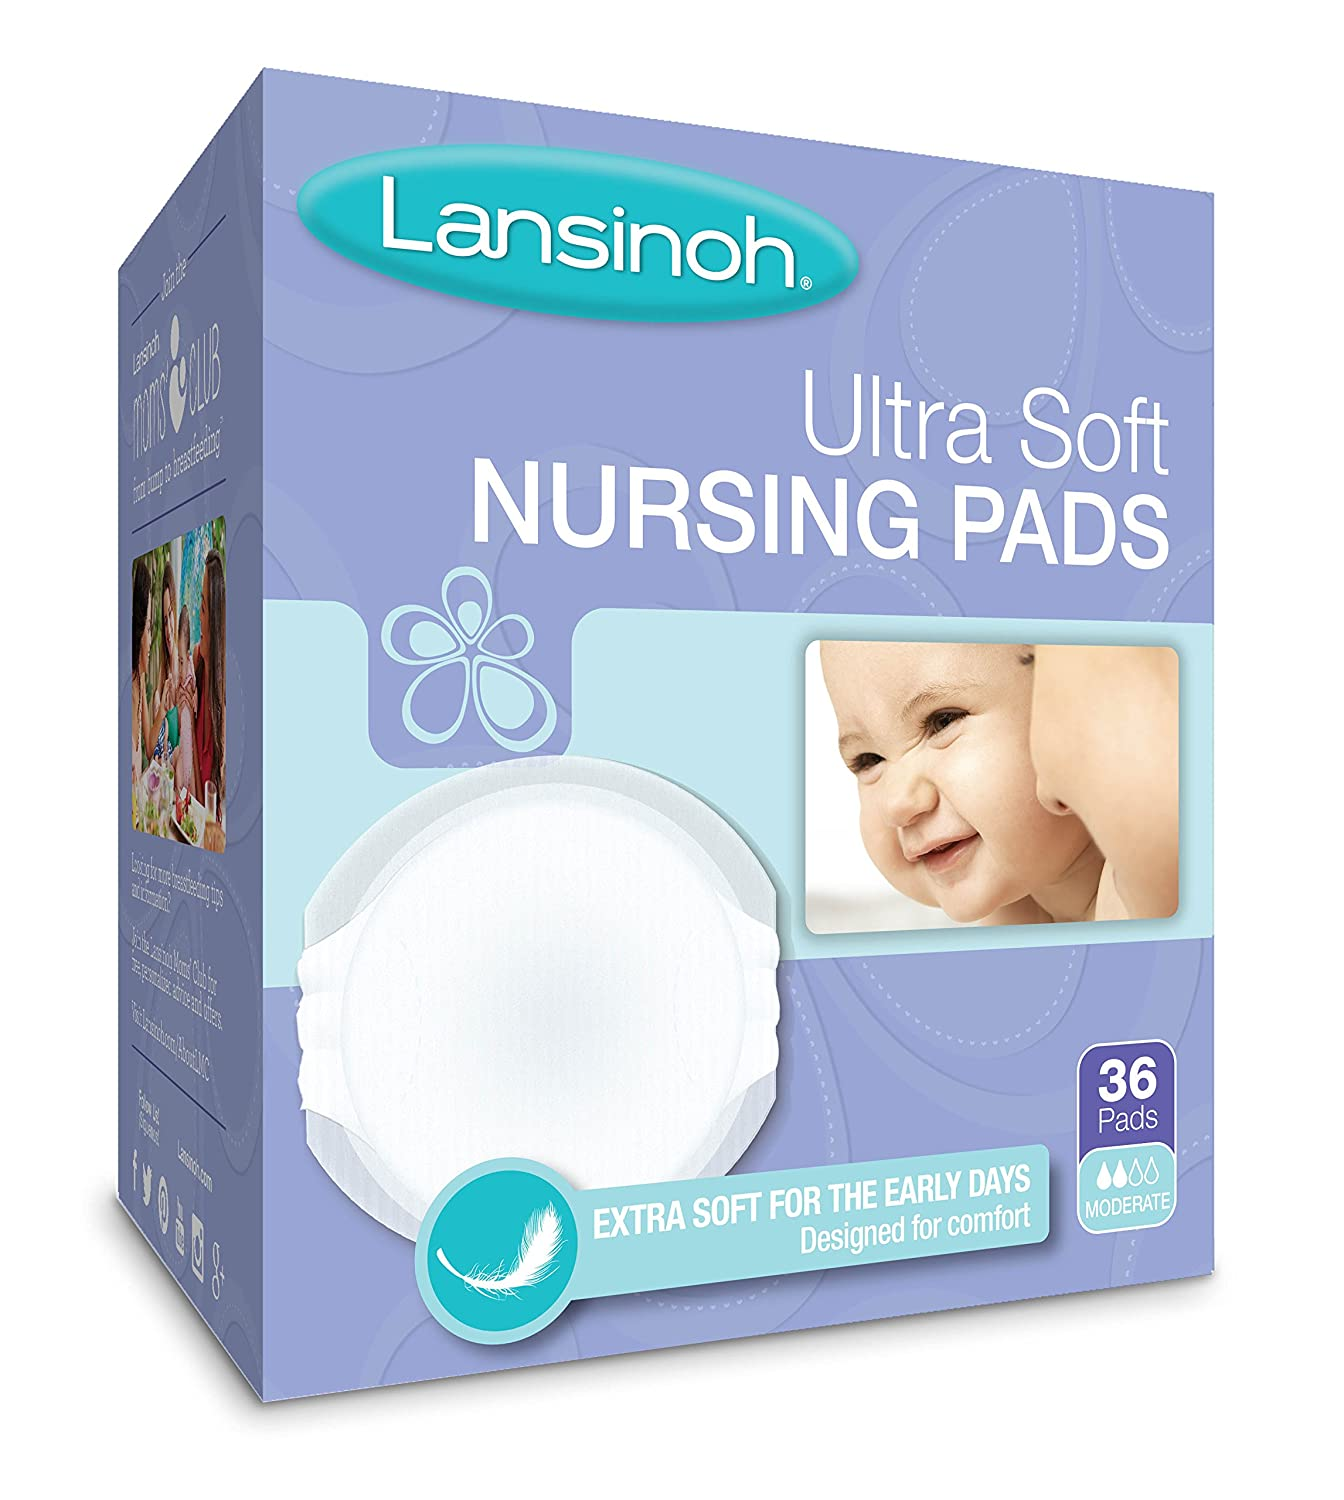 Lansinoh Nursing Pads, Pack of 36 Ultra Soft Disposable Breast Pads 20250